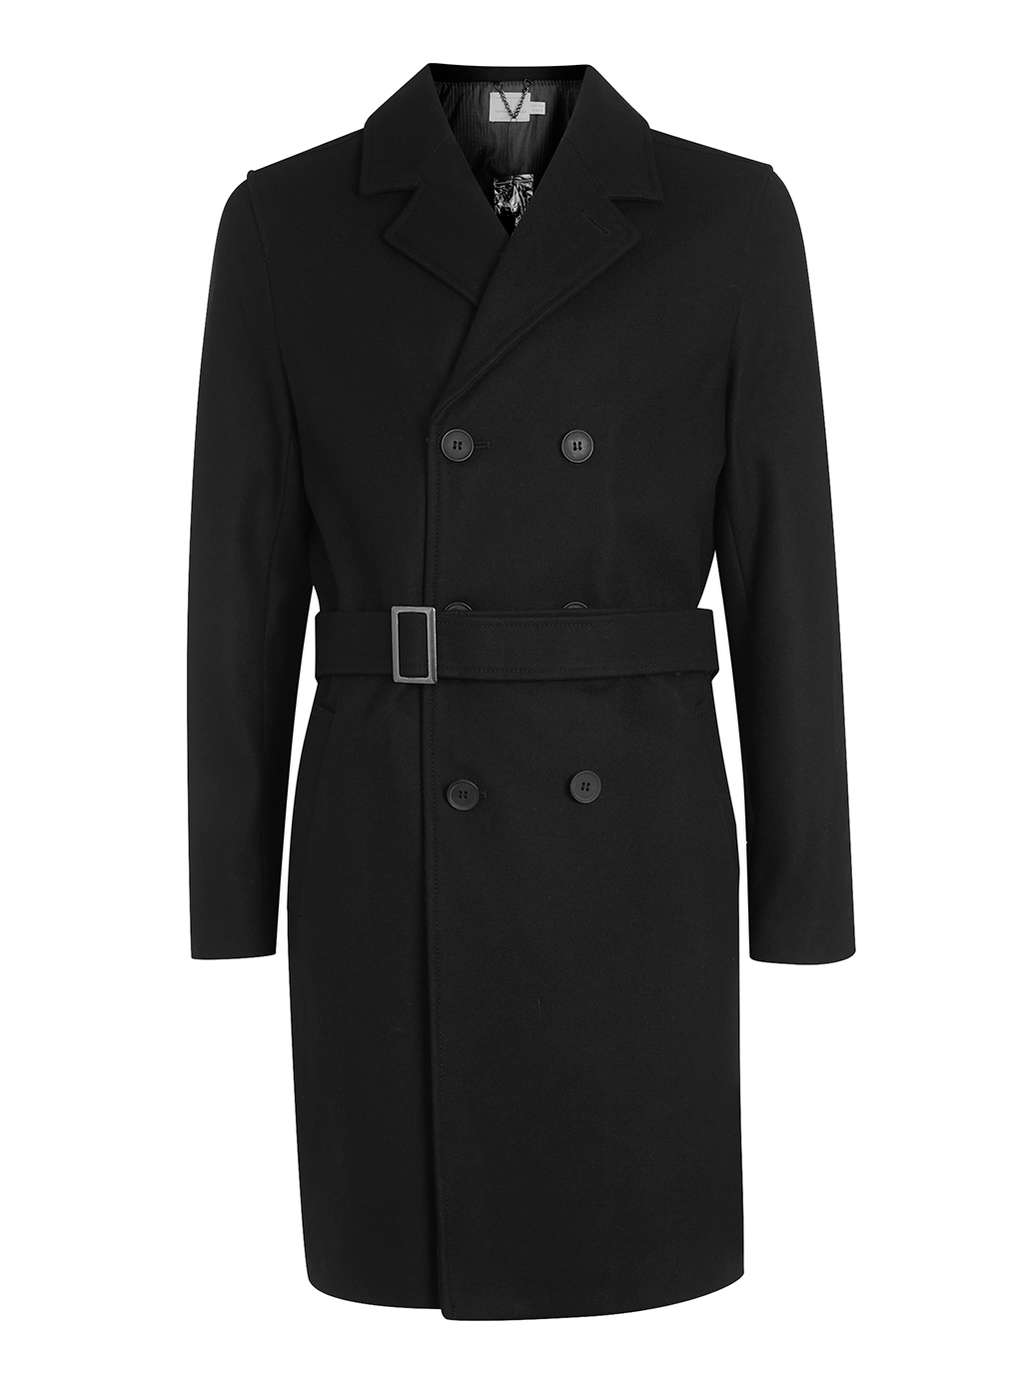 The Double Breasted Overcoat